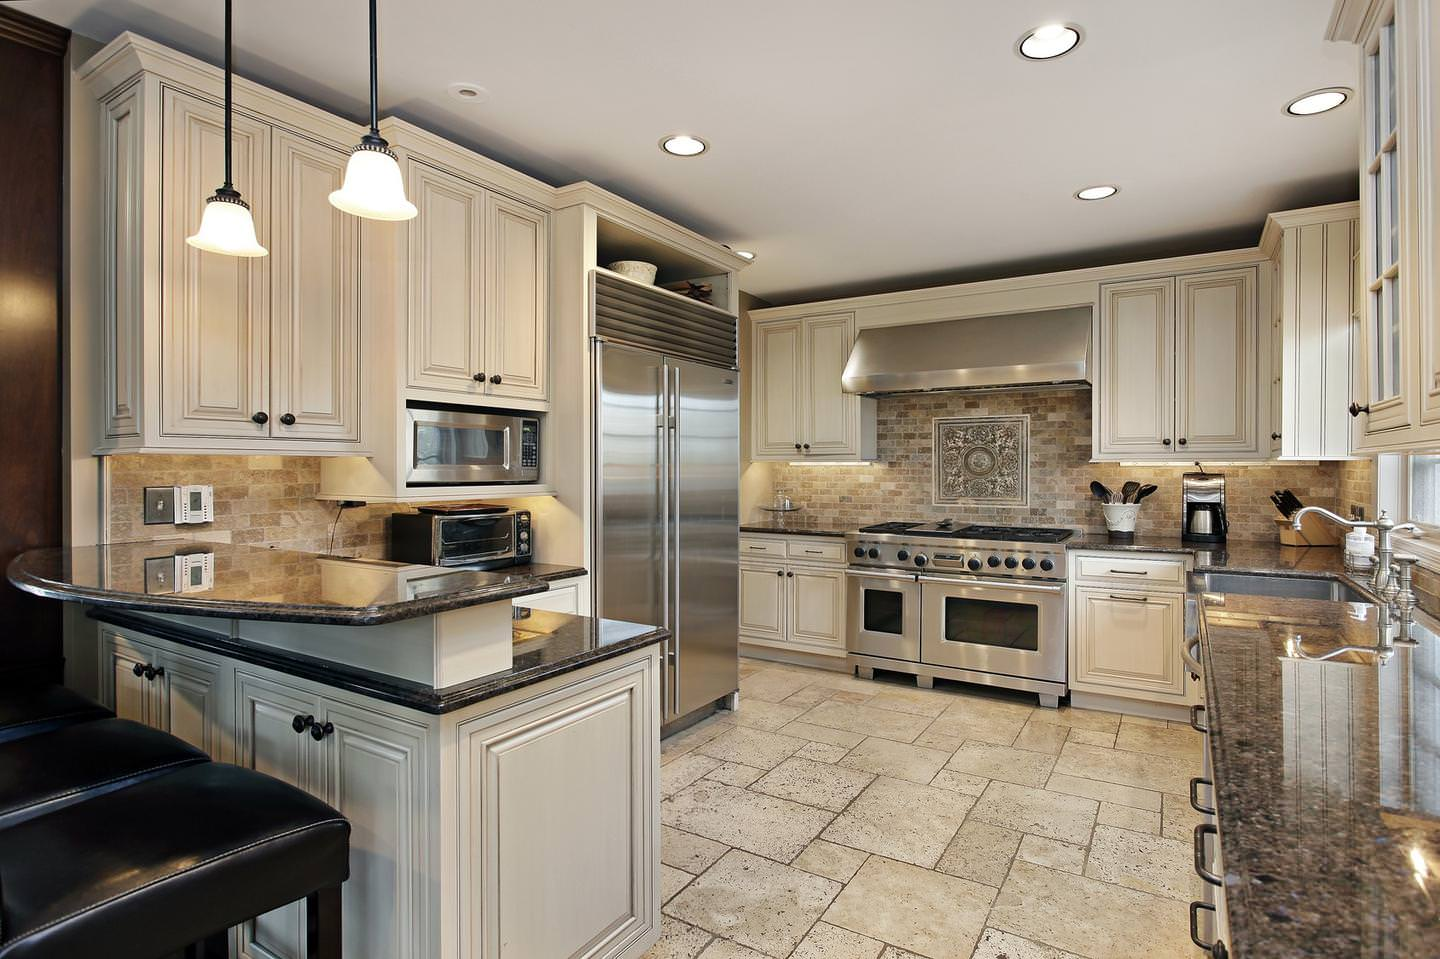 Cream Kitchen s For Design Inspiration for your Kitchen Remodeling